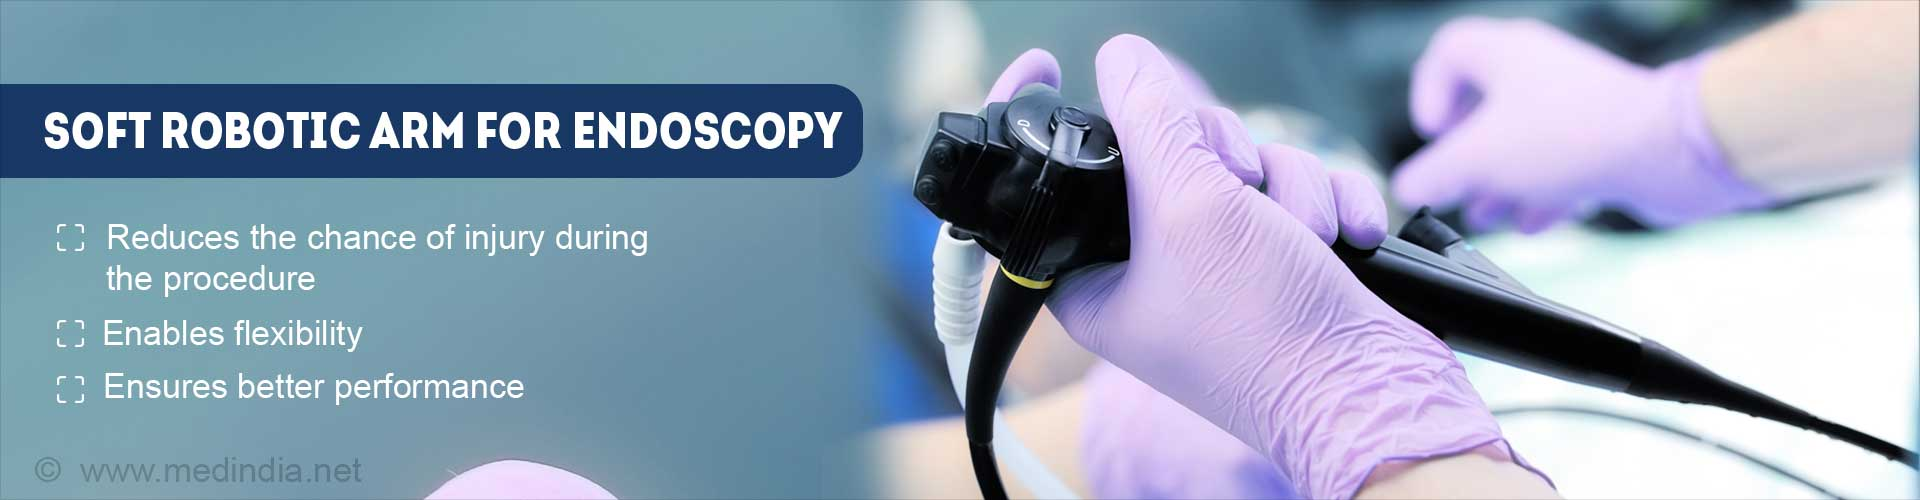 Soft Robotic Arm With Pop-up Mechanism For Endoscopy